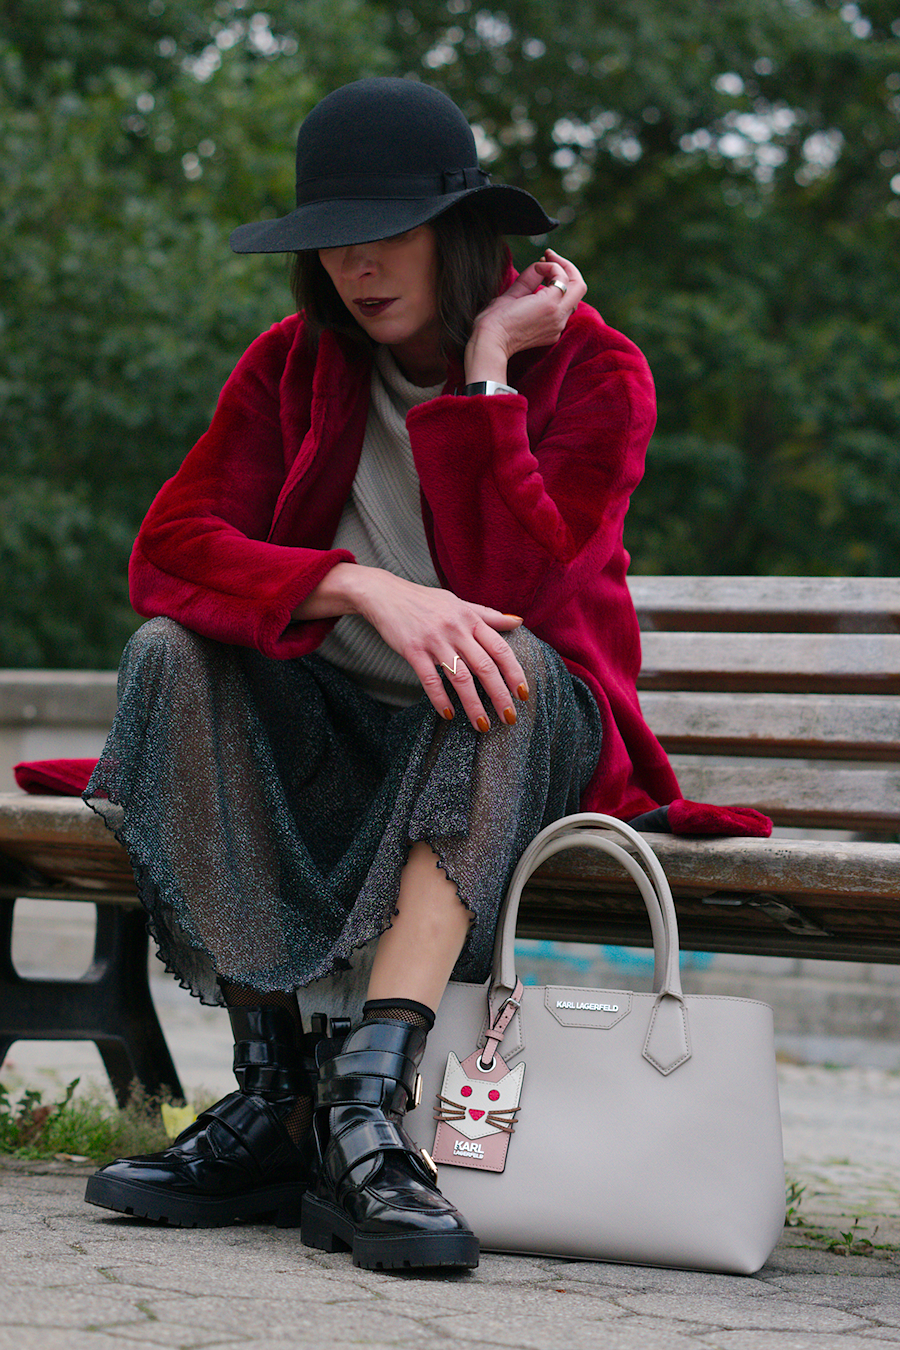 just-take-a-look-berlin-outfit-roter-mantel-Rau Berlin-glitzerrock-und-boots